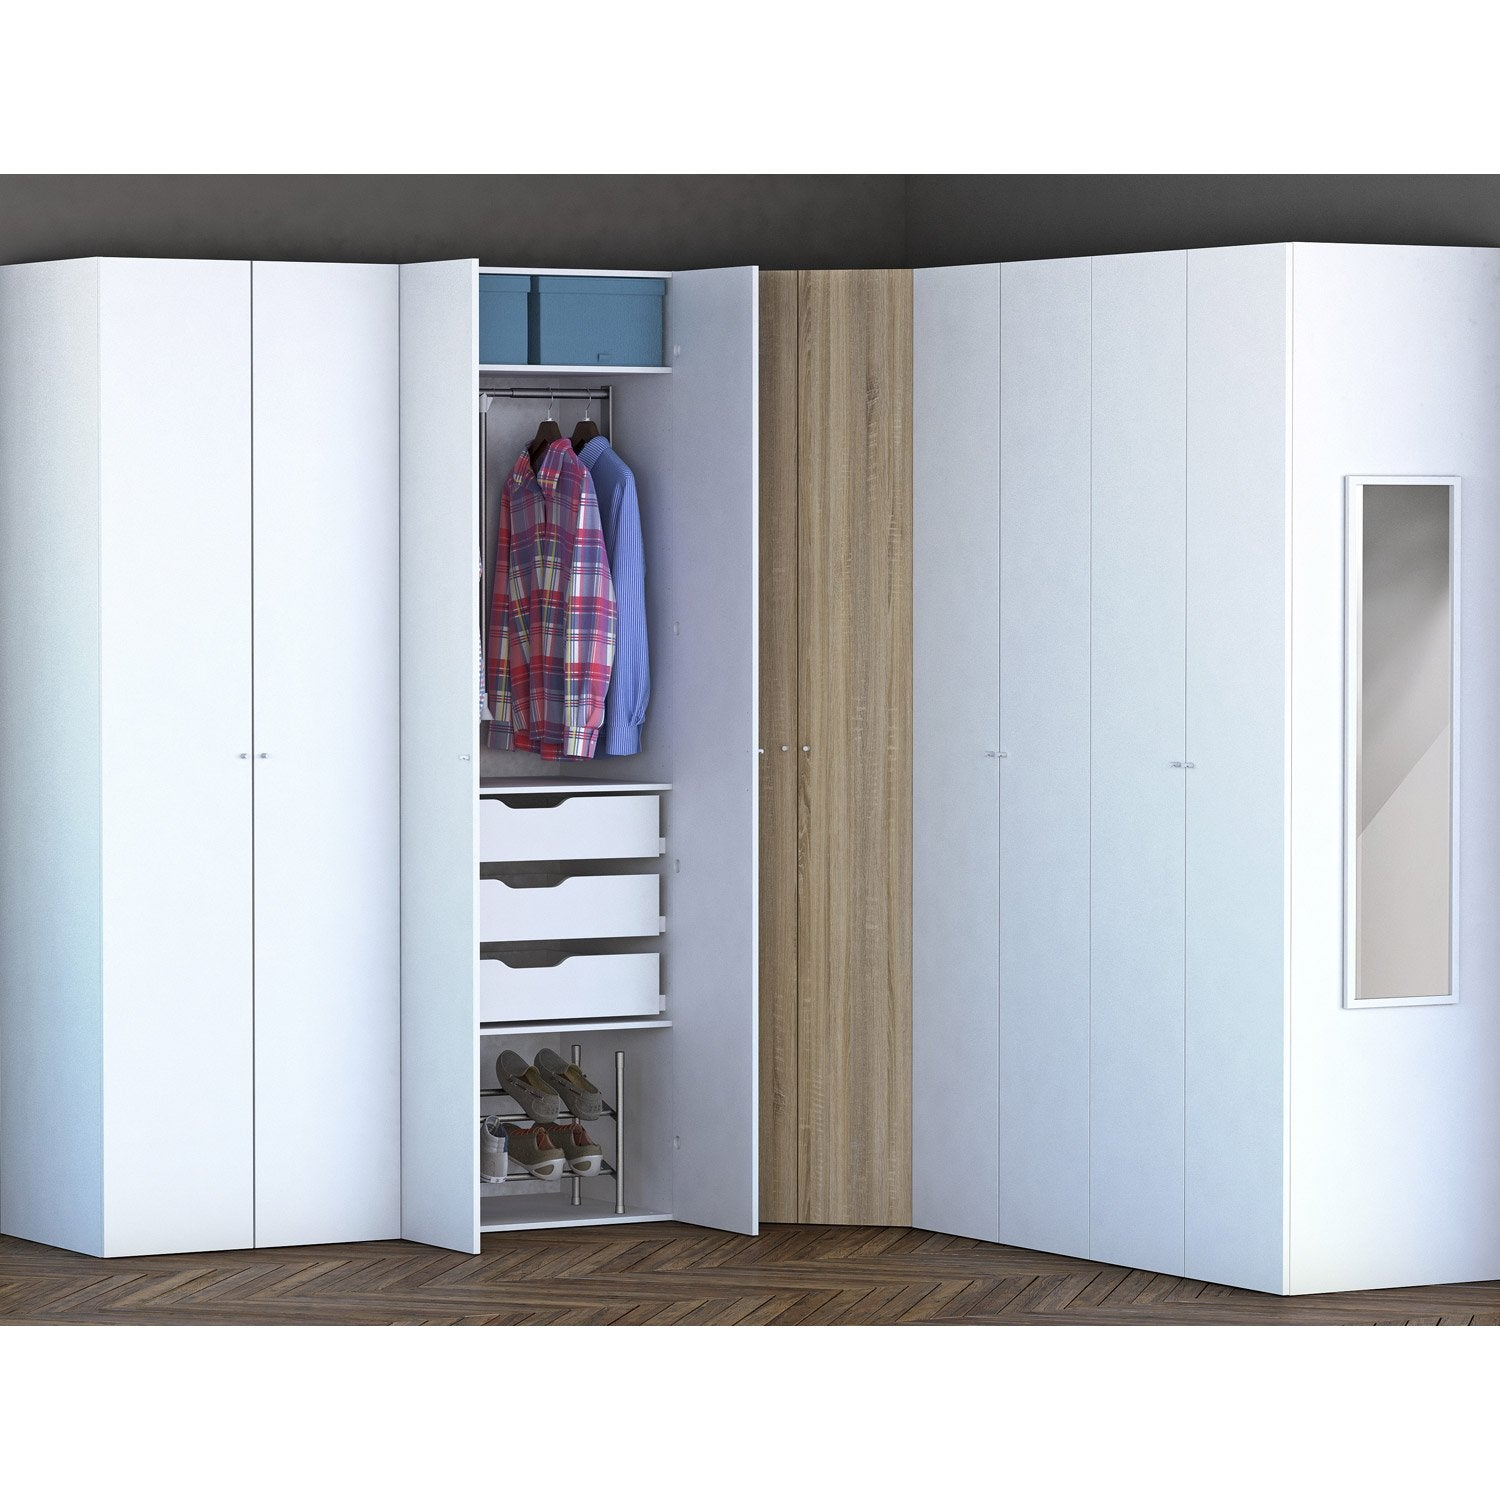 Stunning porte coulissante dressing leroy merlin with - Brico depot porte coulissante interieur ...